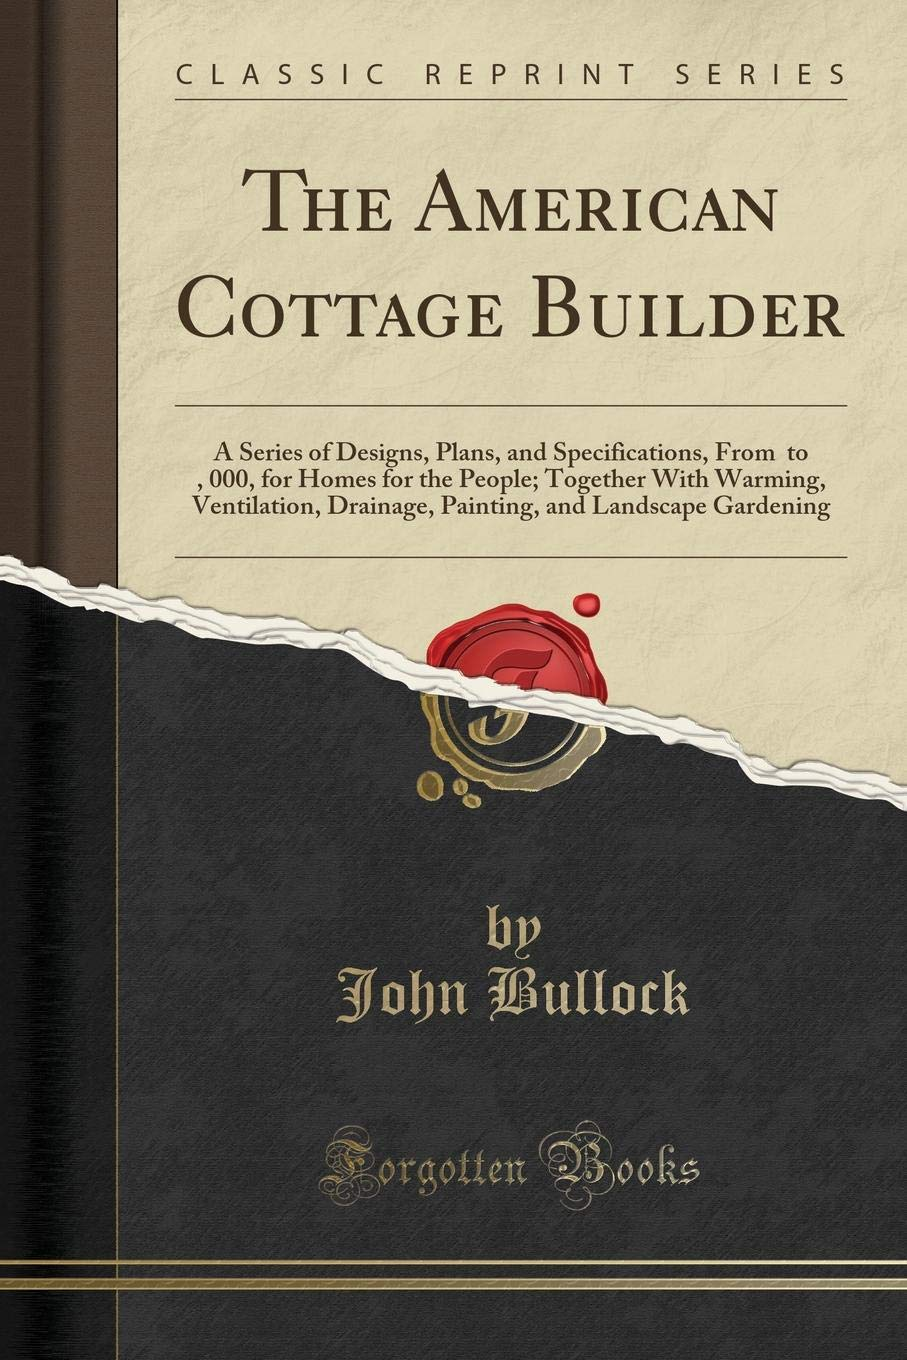 Download The American Cottage Builder: A Series of Designs, Plans, and Specifications, From $200 to $20, 000, for Homes for the People; Together With Warming, ... and Landscape Gardening (Classic Reprint) pdf